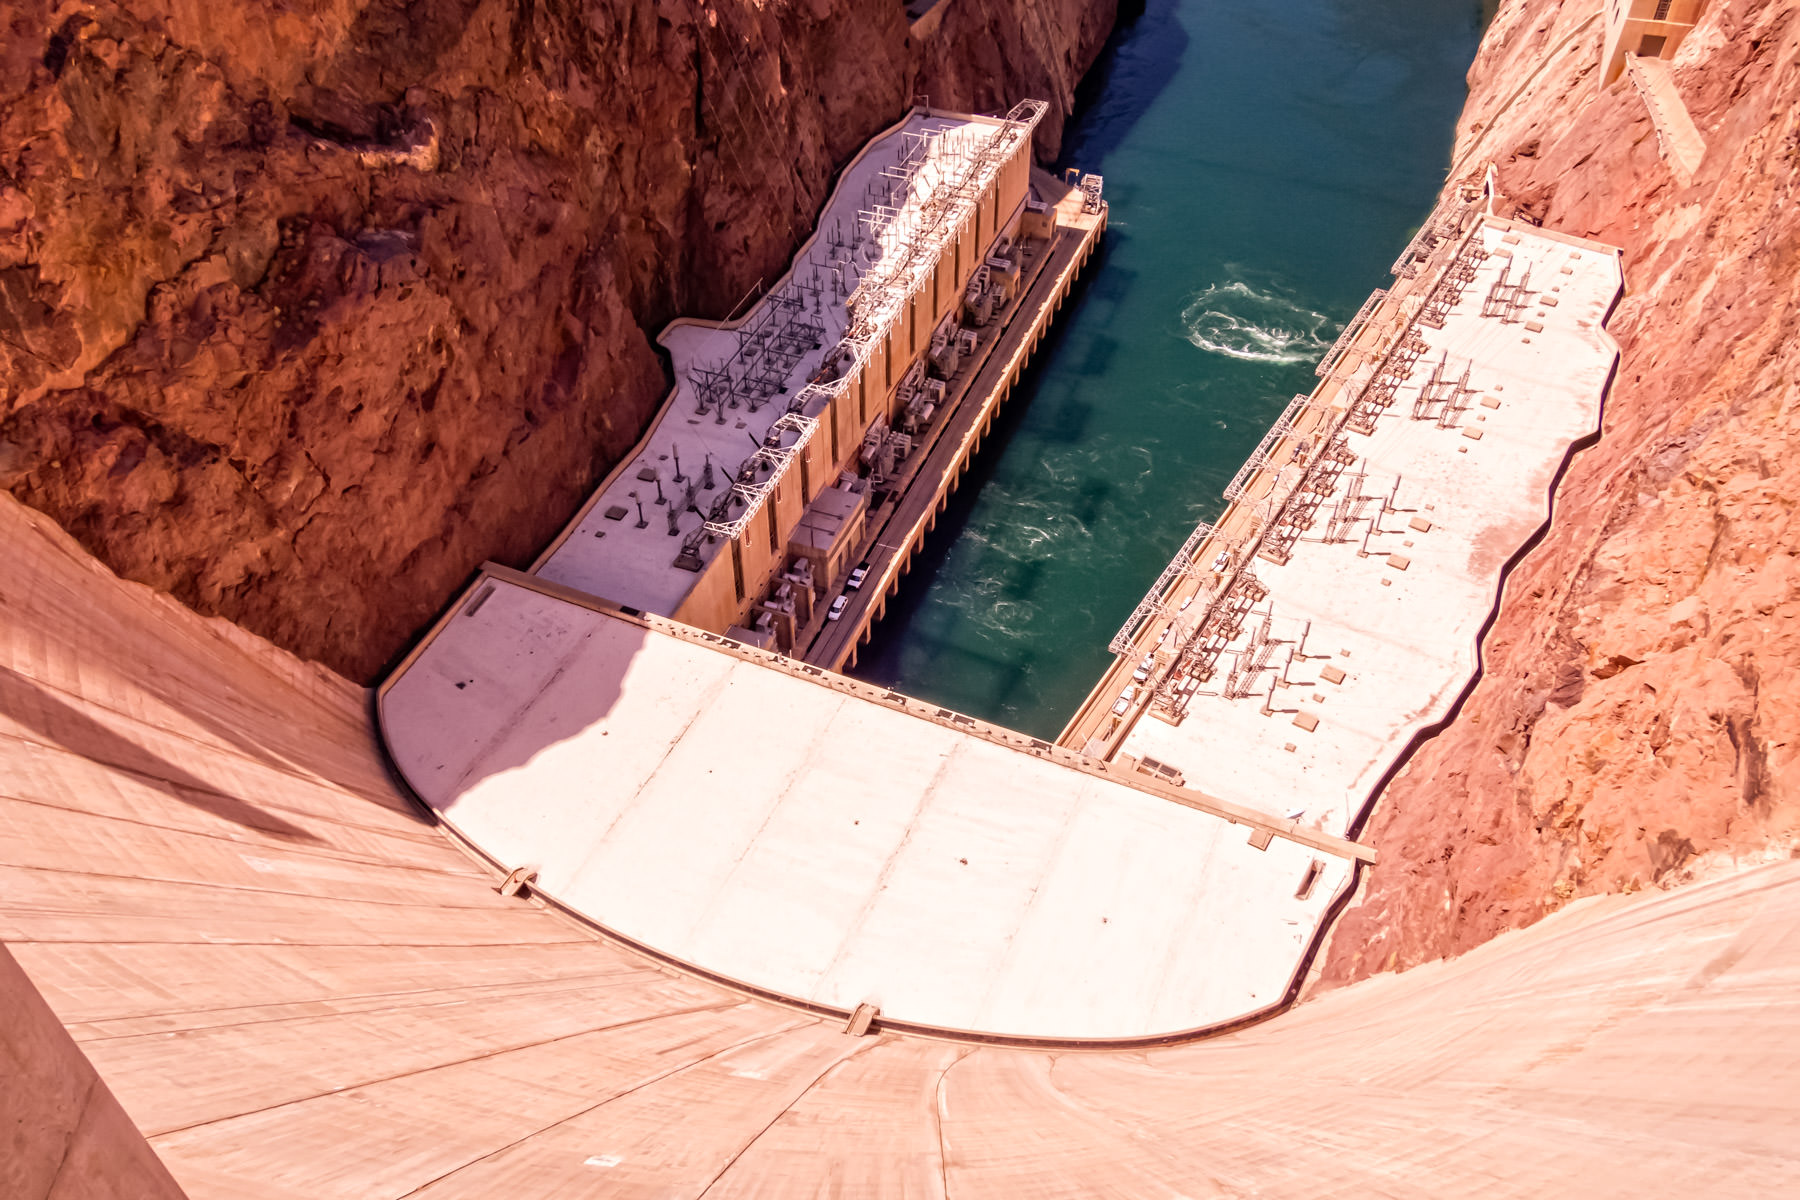 Looking down the 221 meter (726 ft.) tall Hoover Dam on the Colorado River at the border of Nevada and Arizona.